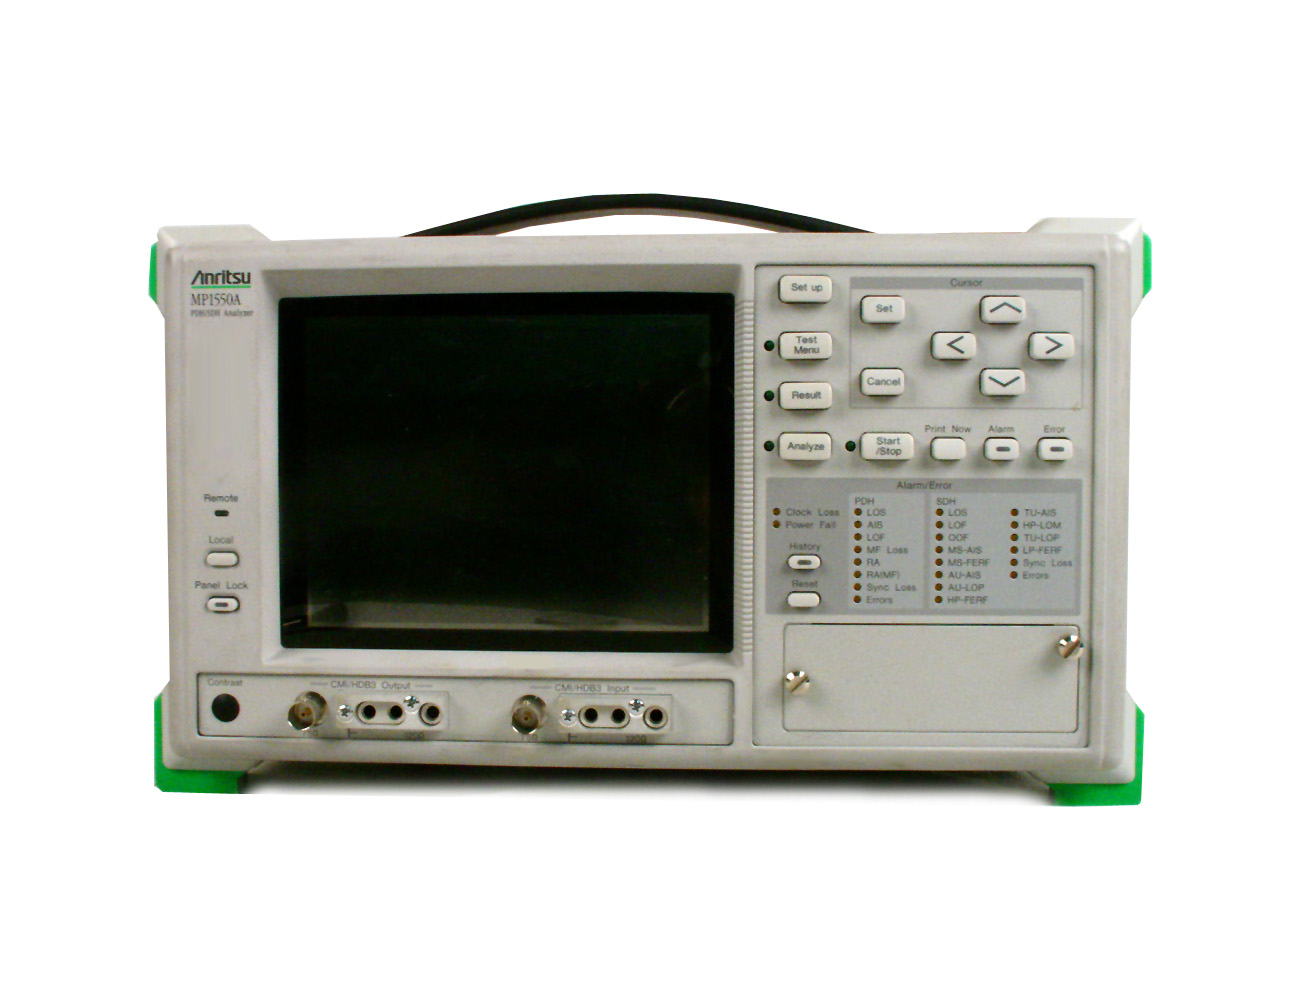 Anritsu MP1550A for sale